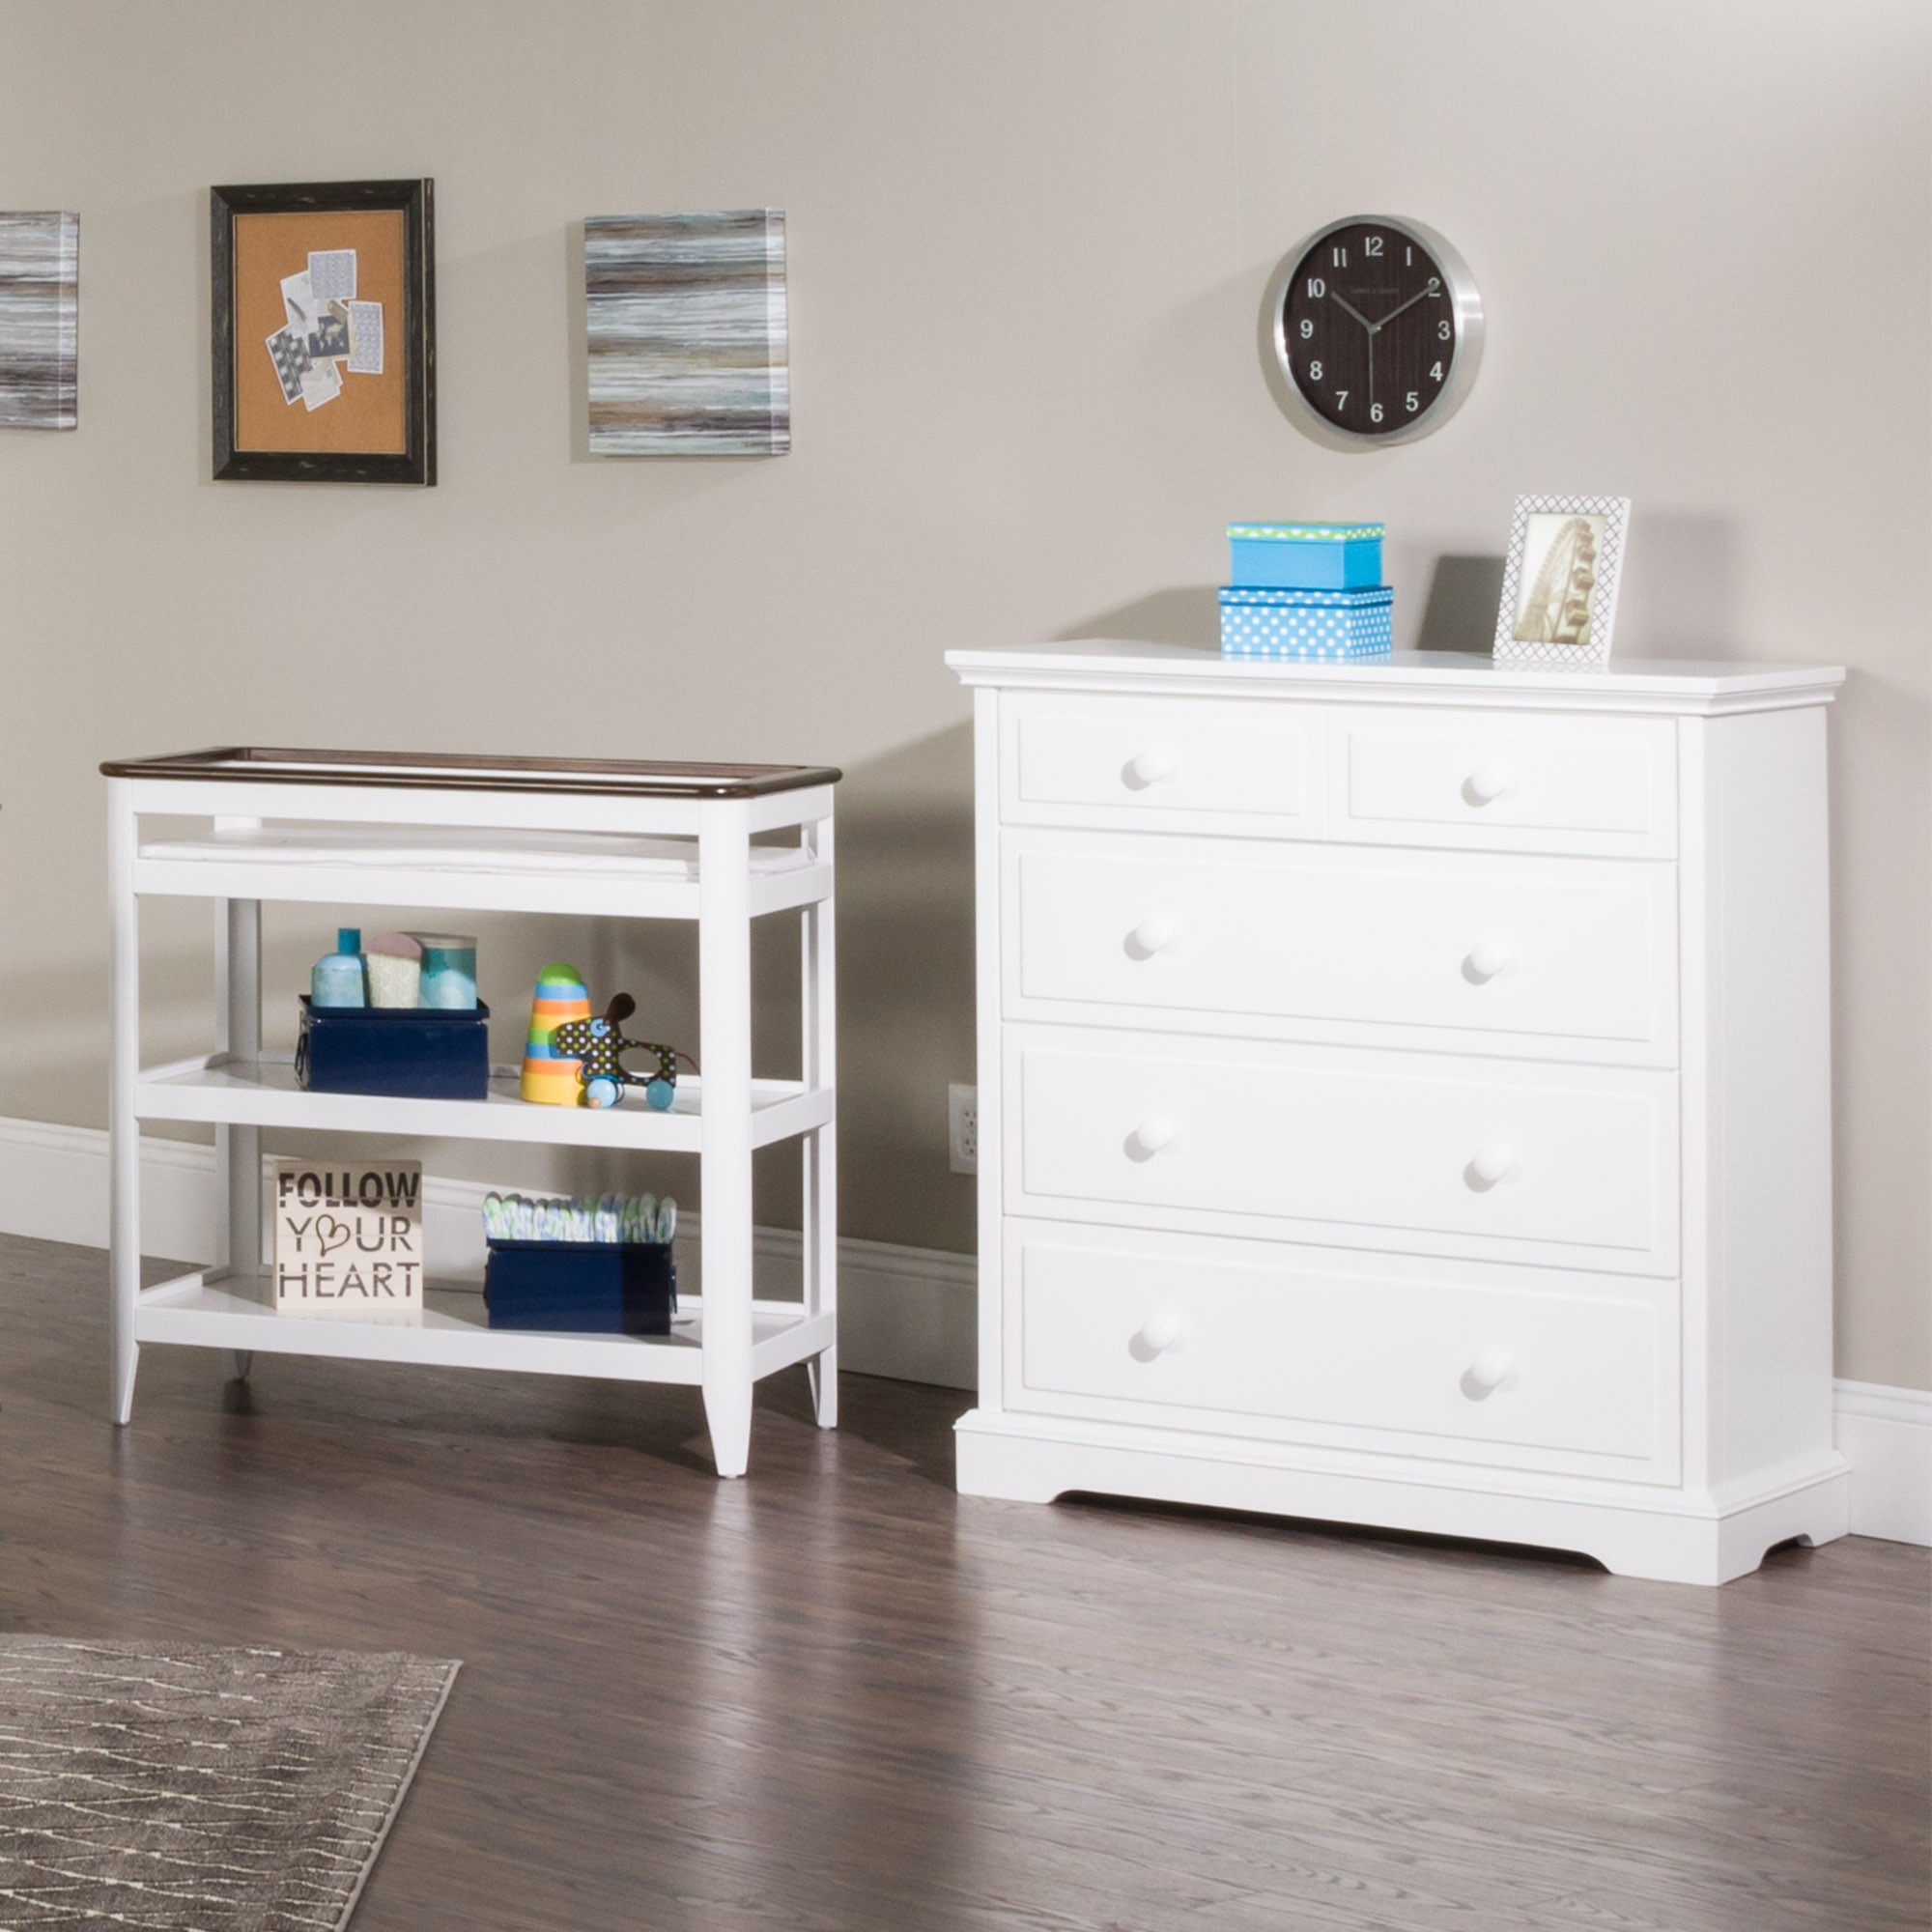 shipping drawer overstock drawers changer tables with free modo today tray garden removable home changing dresser product babyletto